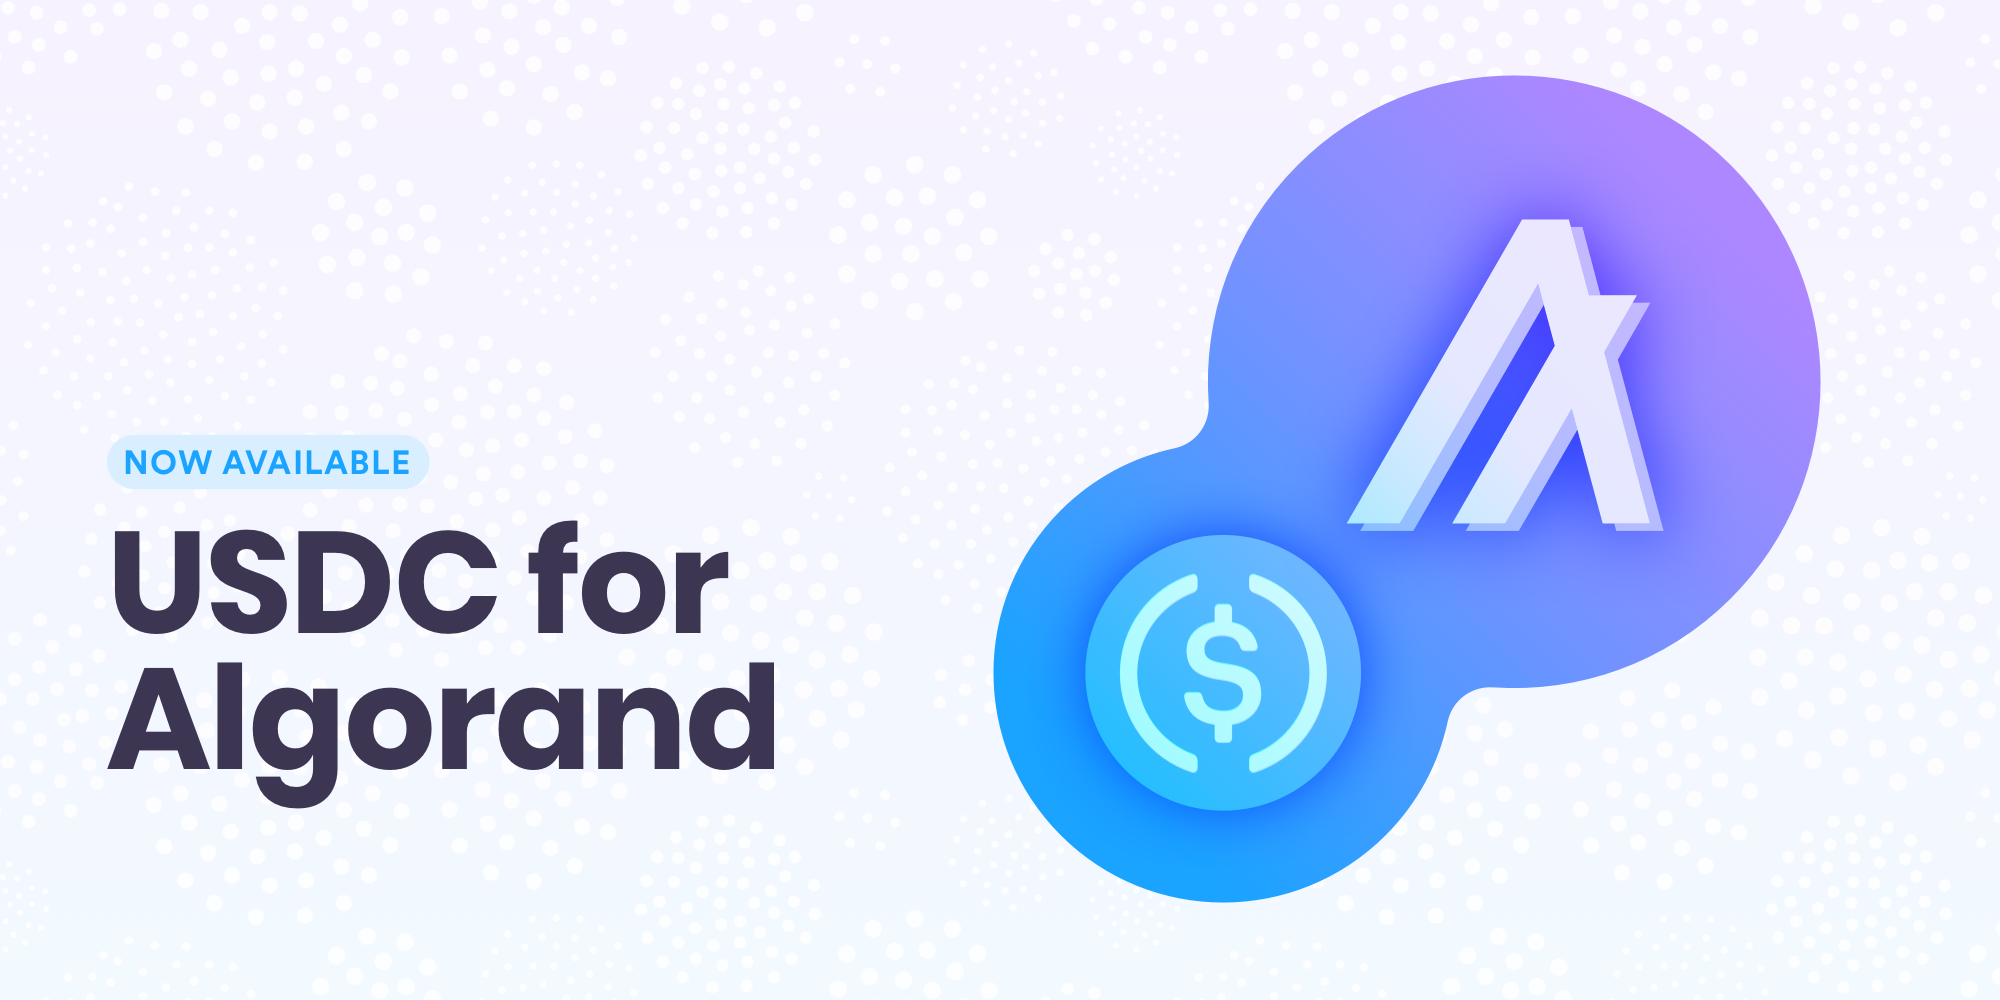 USDC for Algorand now available in your Circle Account